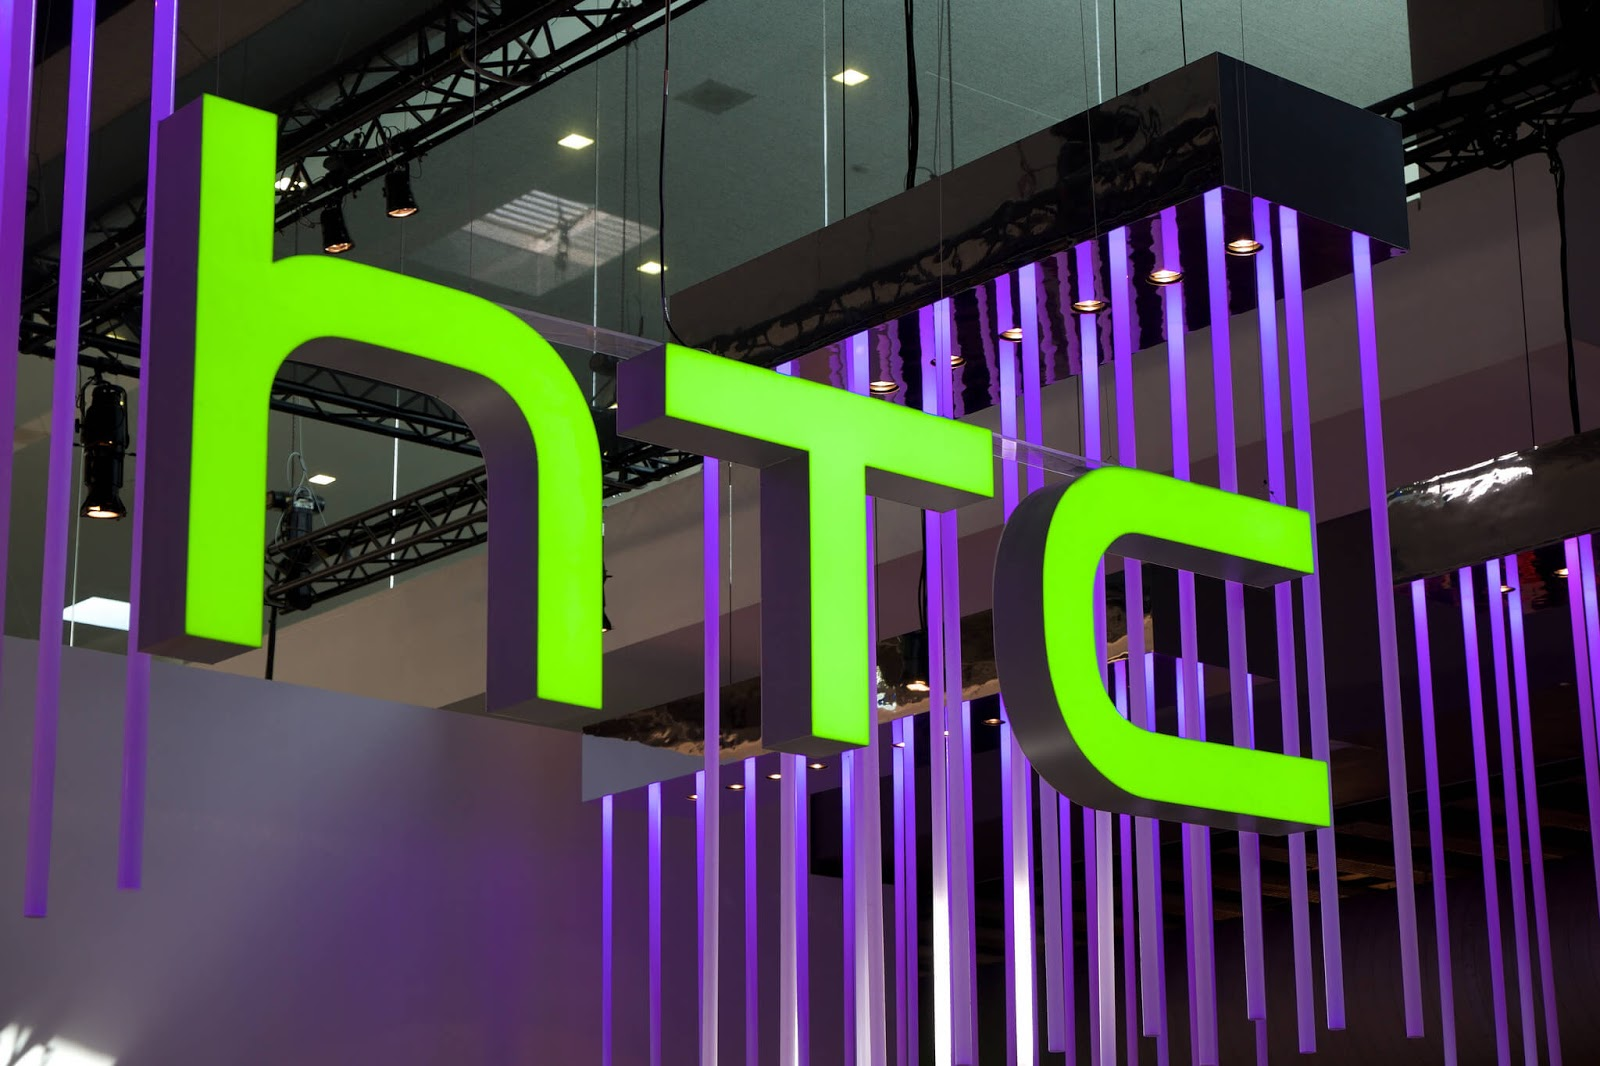 HTC Will Cutback 1,500 Workers To Oversee Resources Better